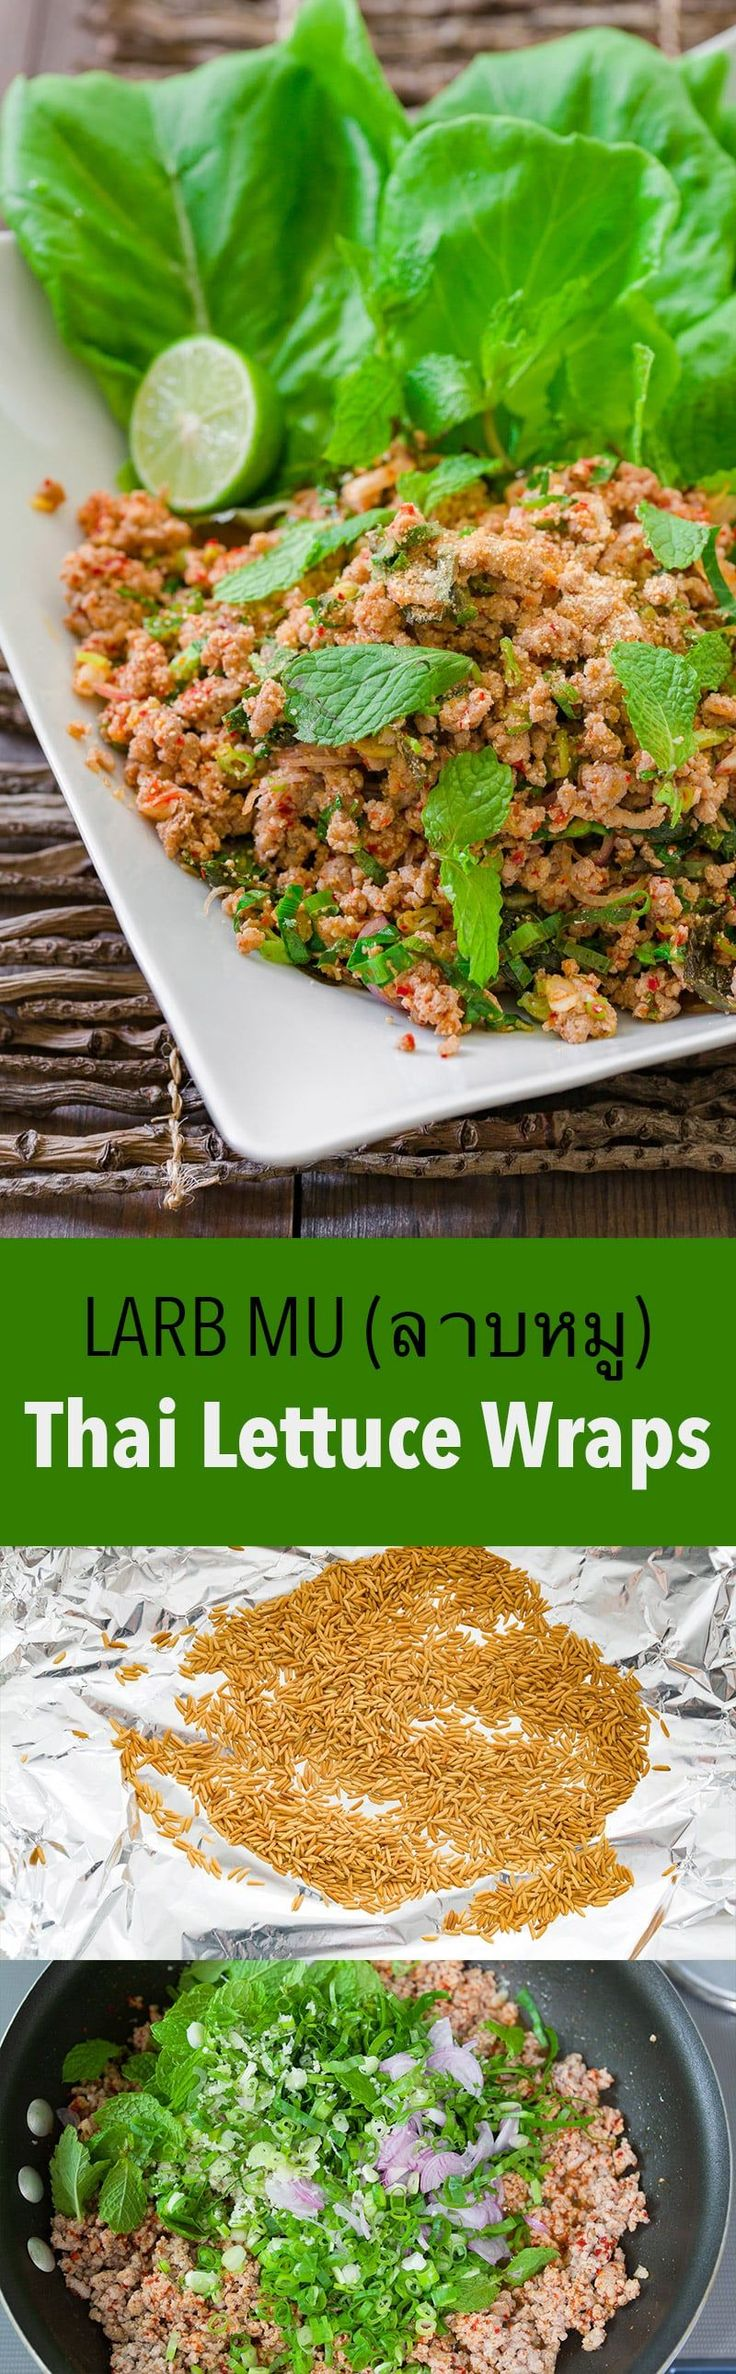 "Larb Mu (ลาบหมู), or ""pork larb"" is an easy Isan Thai/Lao salad made with ground meat, mint, lemongrass, chilies, and a tart and savory dressing."